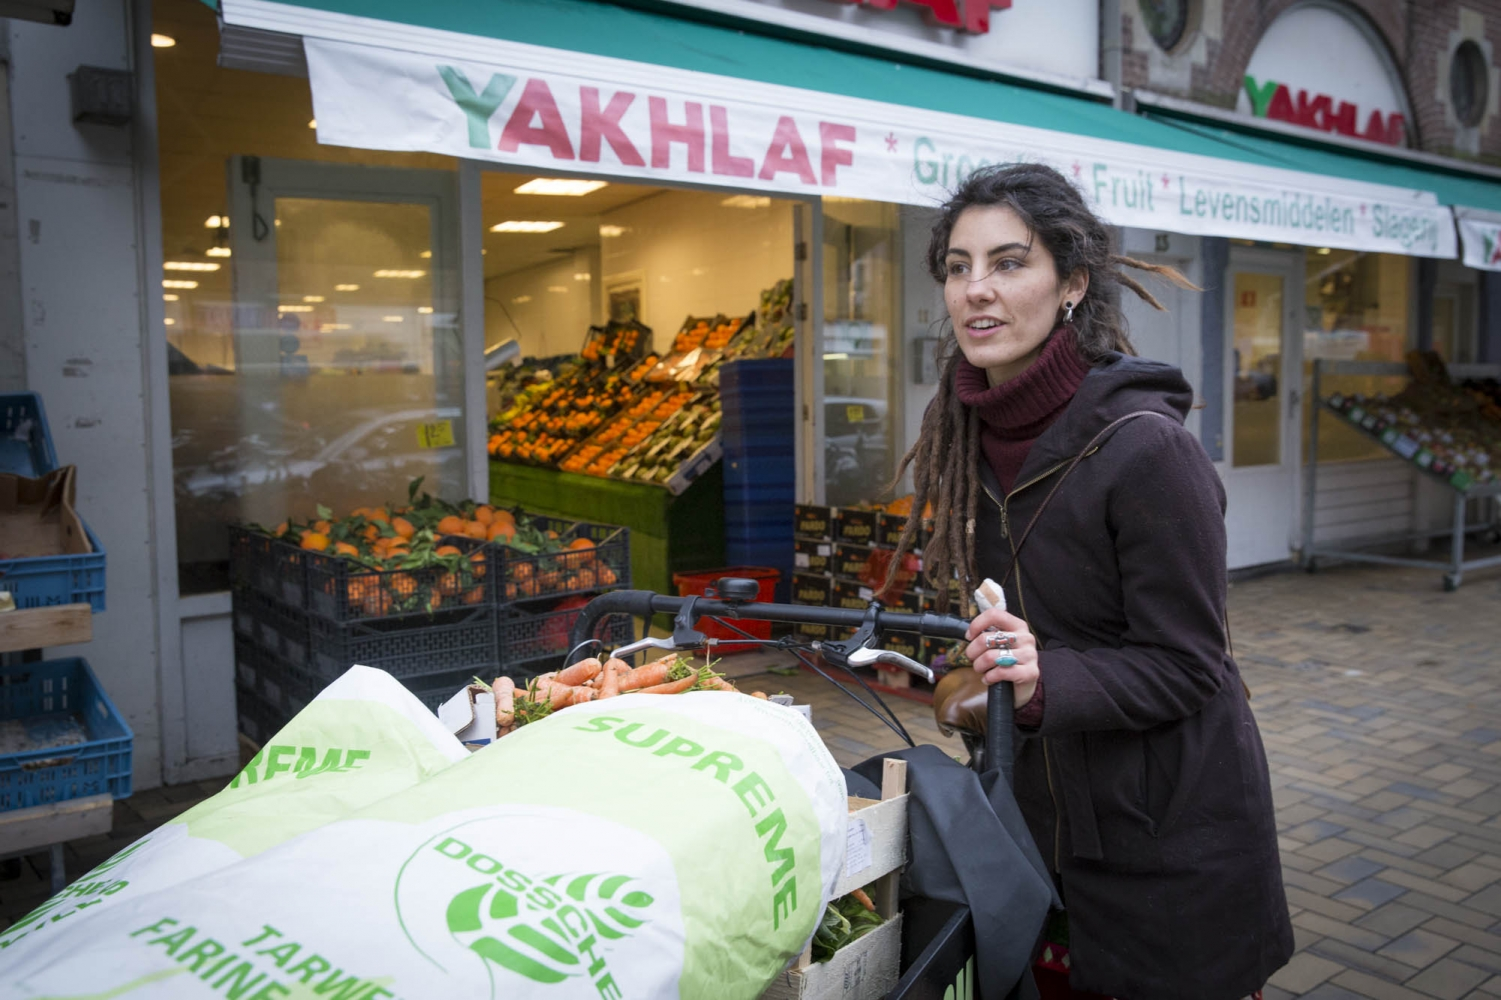 Roswitha - reportage - voervoorbeeld- taste before you waste 7272 Roswitha de Boer - Photography